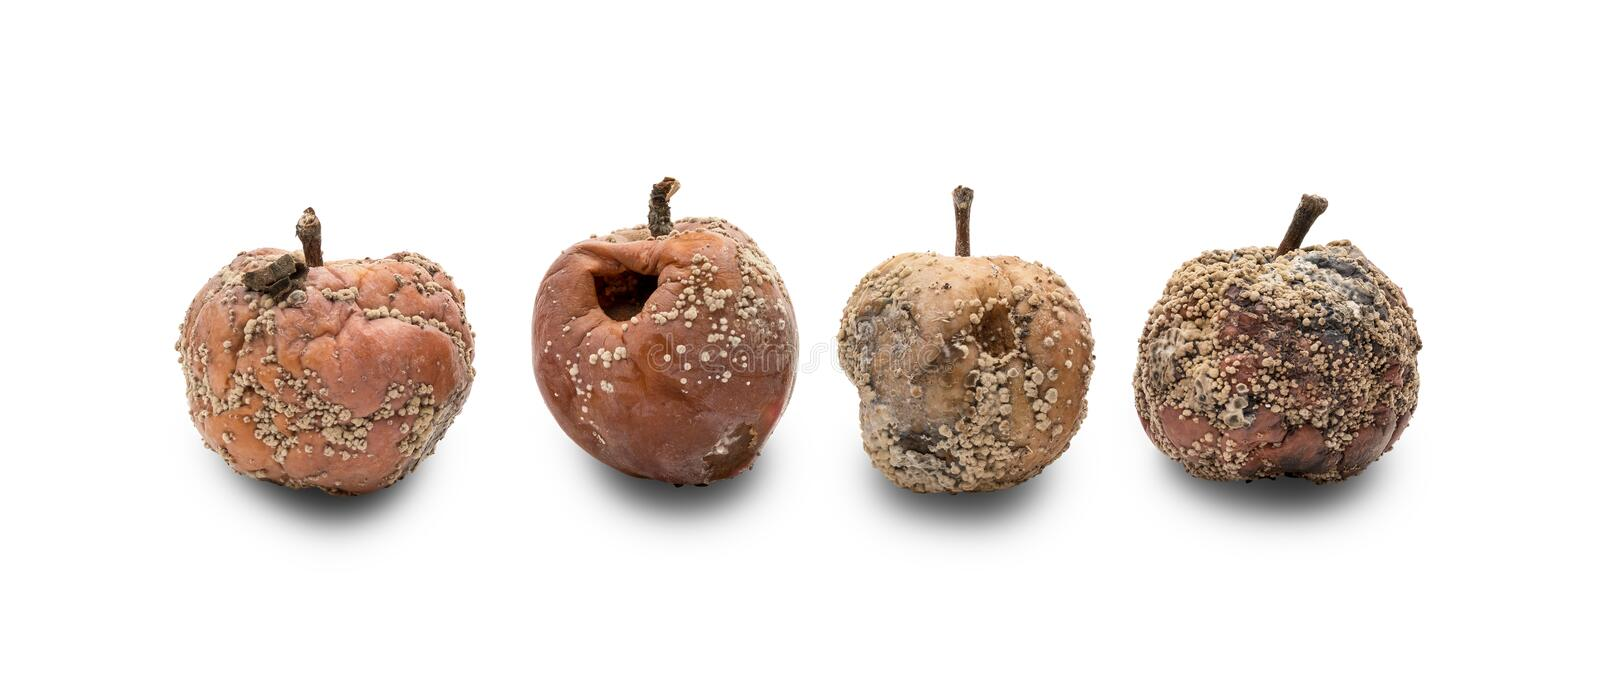 Rotten apples with fungus stock images